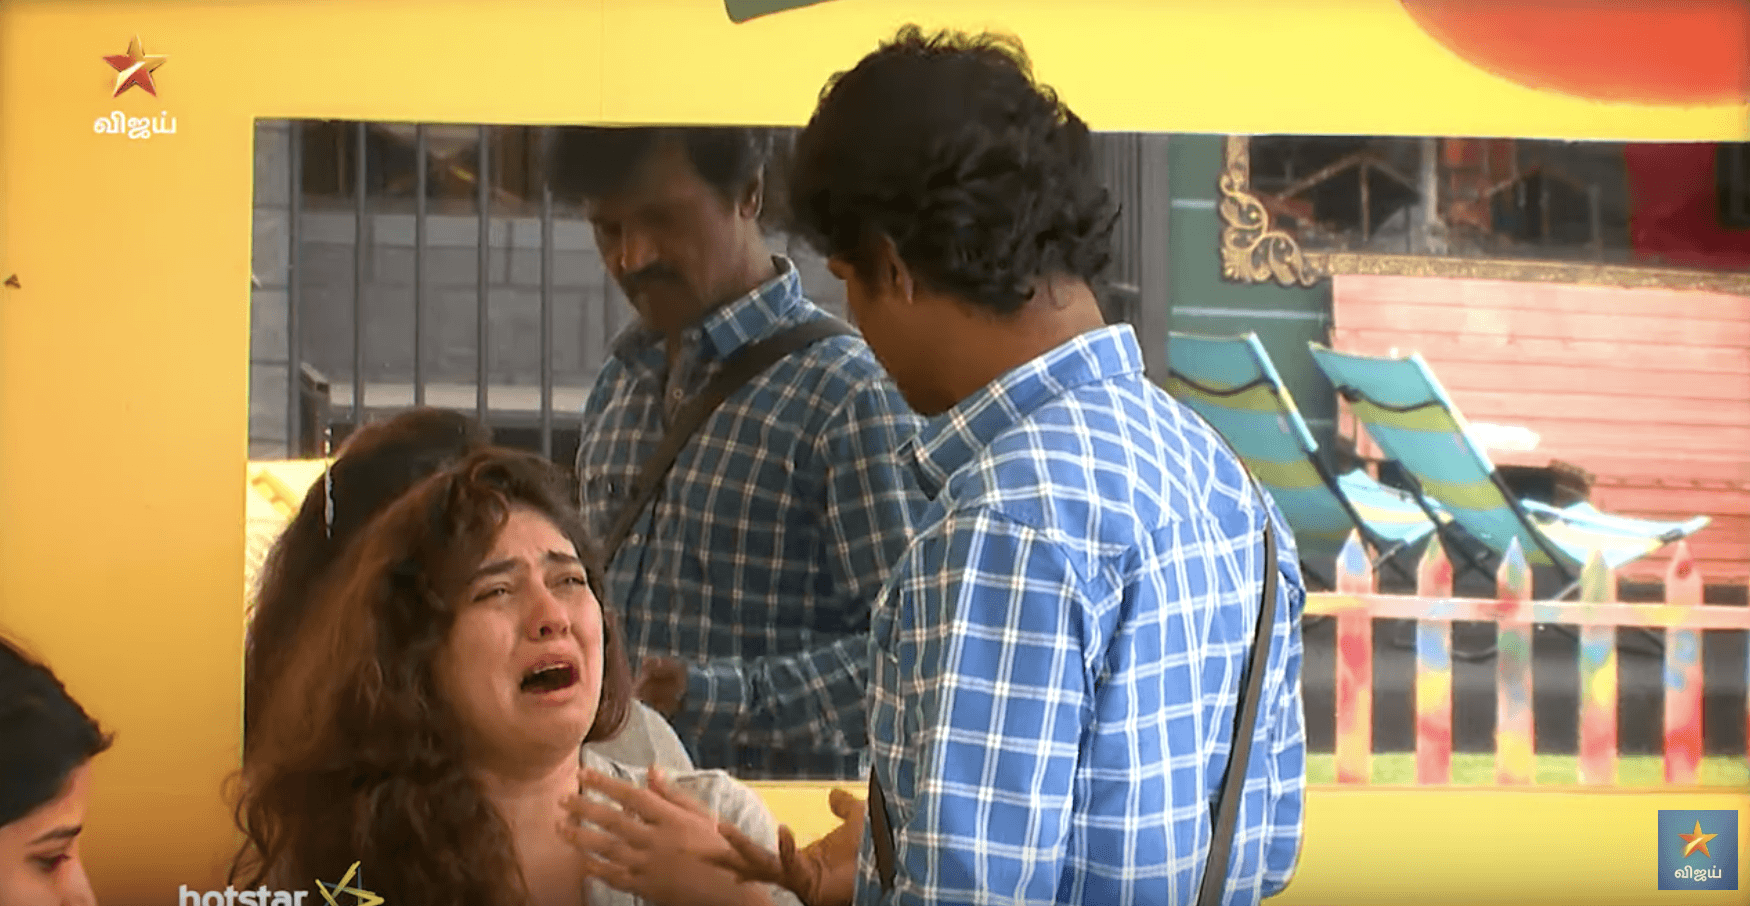 Bigg Boss 3 Tamil September 5 Day 74 - Sherin crying, Cheran